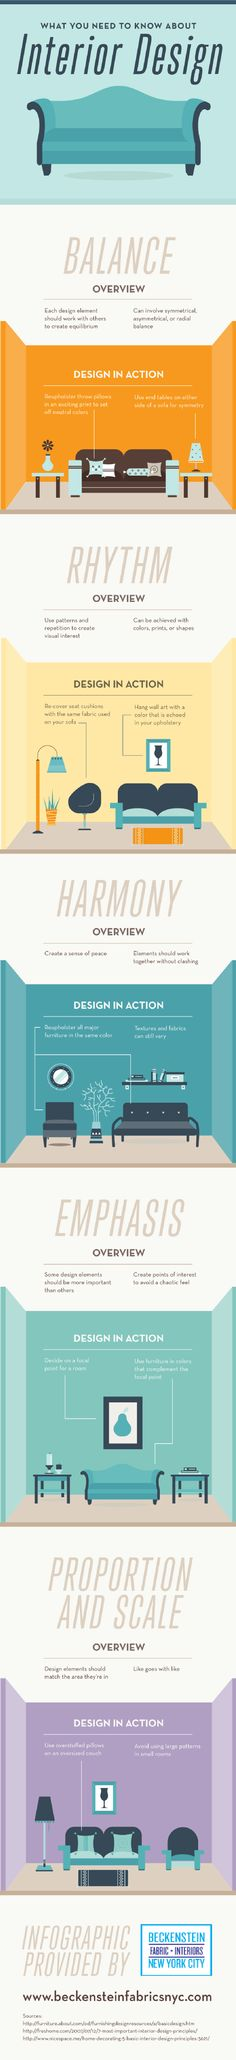 What you need to know about interior design. ihttp://visual.ly/what-you-need-know-about-interior-design